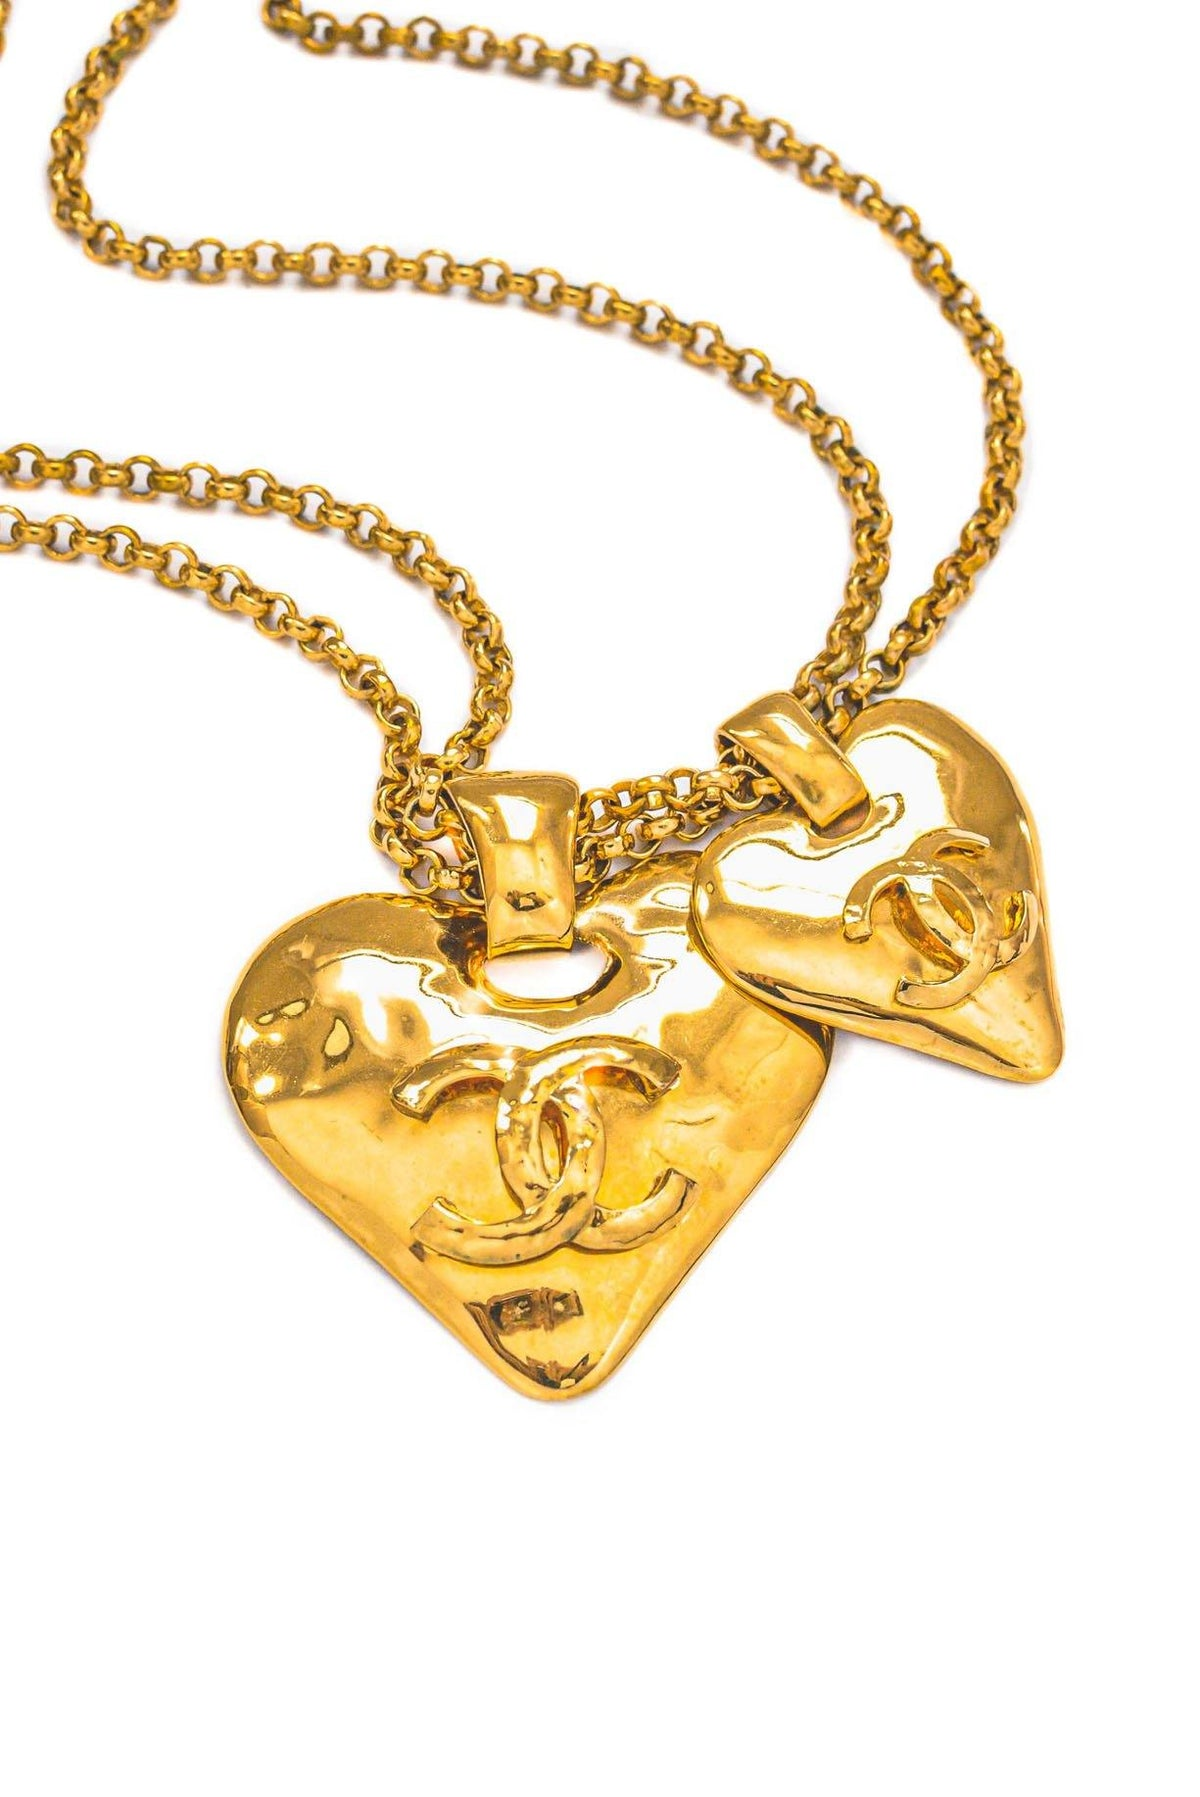 Vintage Chanel CC Double Heart Statement Necklace from Sweet and Spark